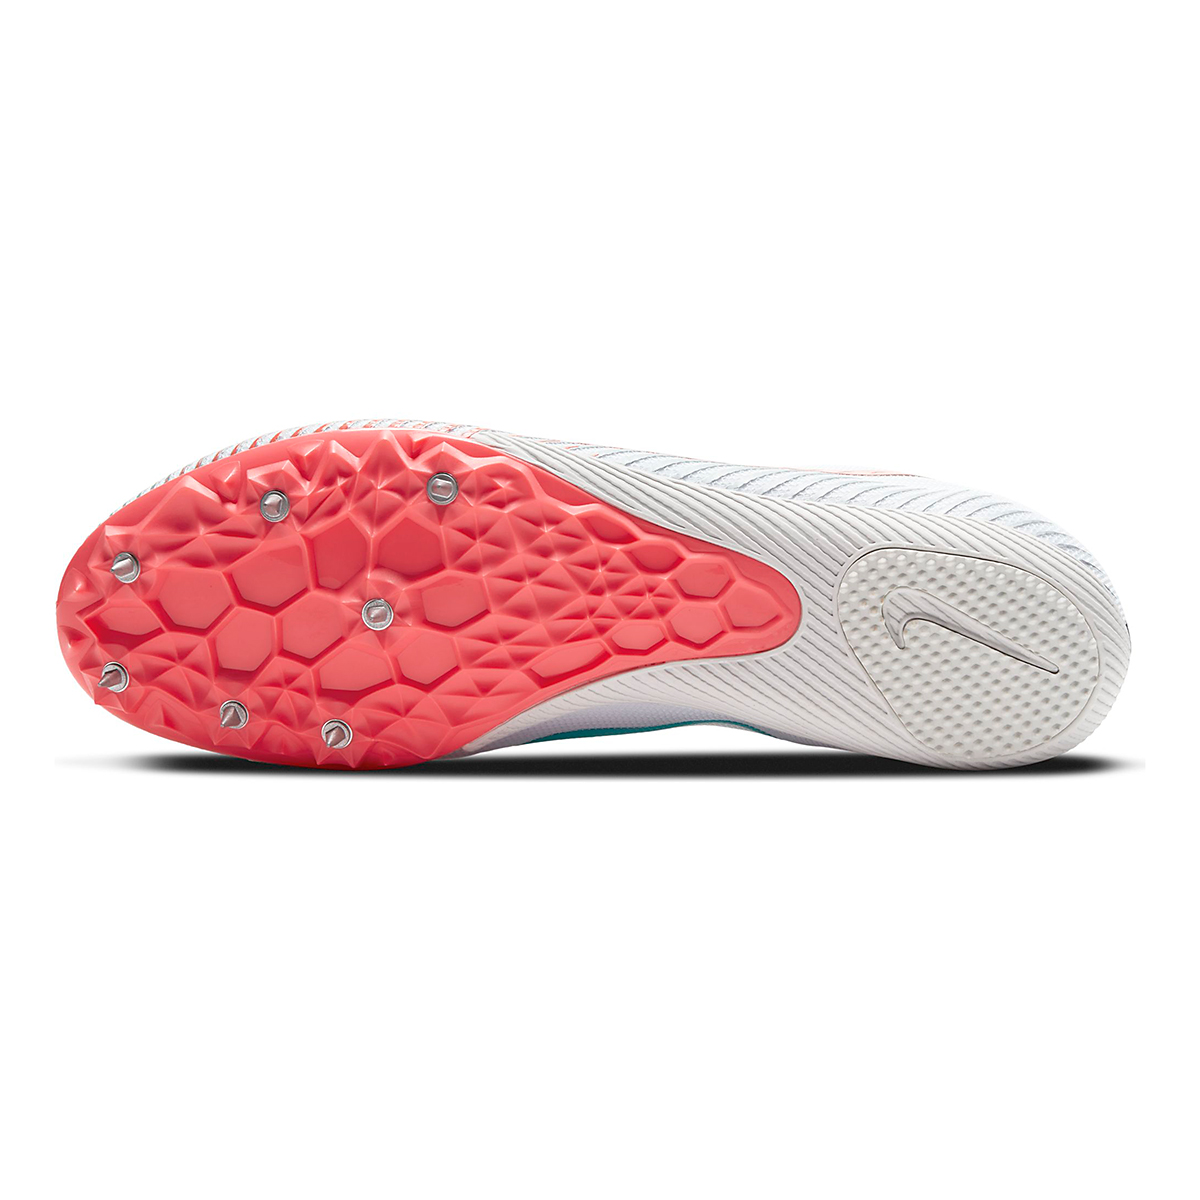 Nike Zoom Rival M 9 Track Spikes - Color: White/Flash Crimson/Hyper Jade/Black - Size: M4/W5.5 - Width: Regular, White/Flash Crimson/Hyper Jade/Black, large, image 3